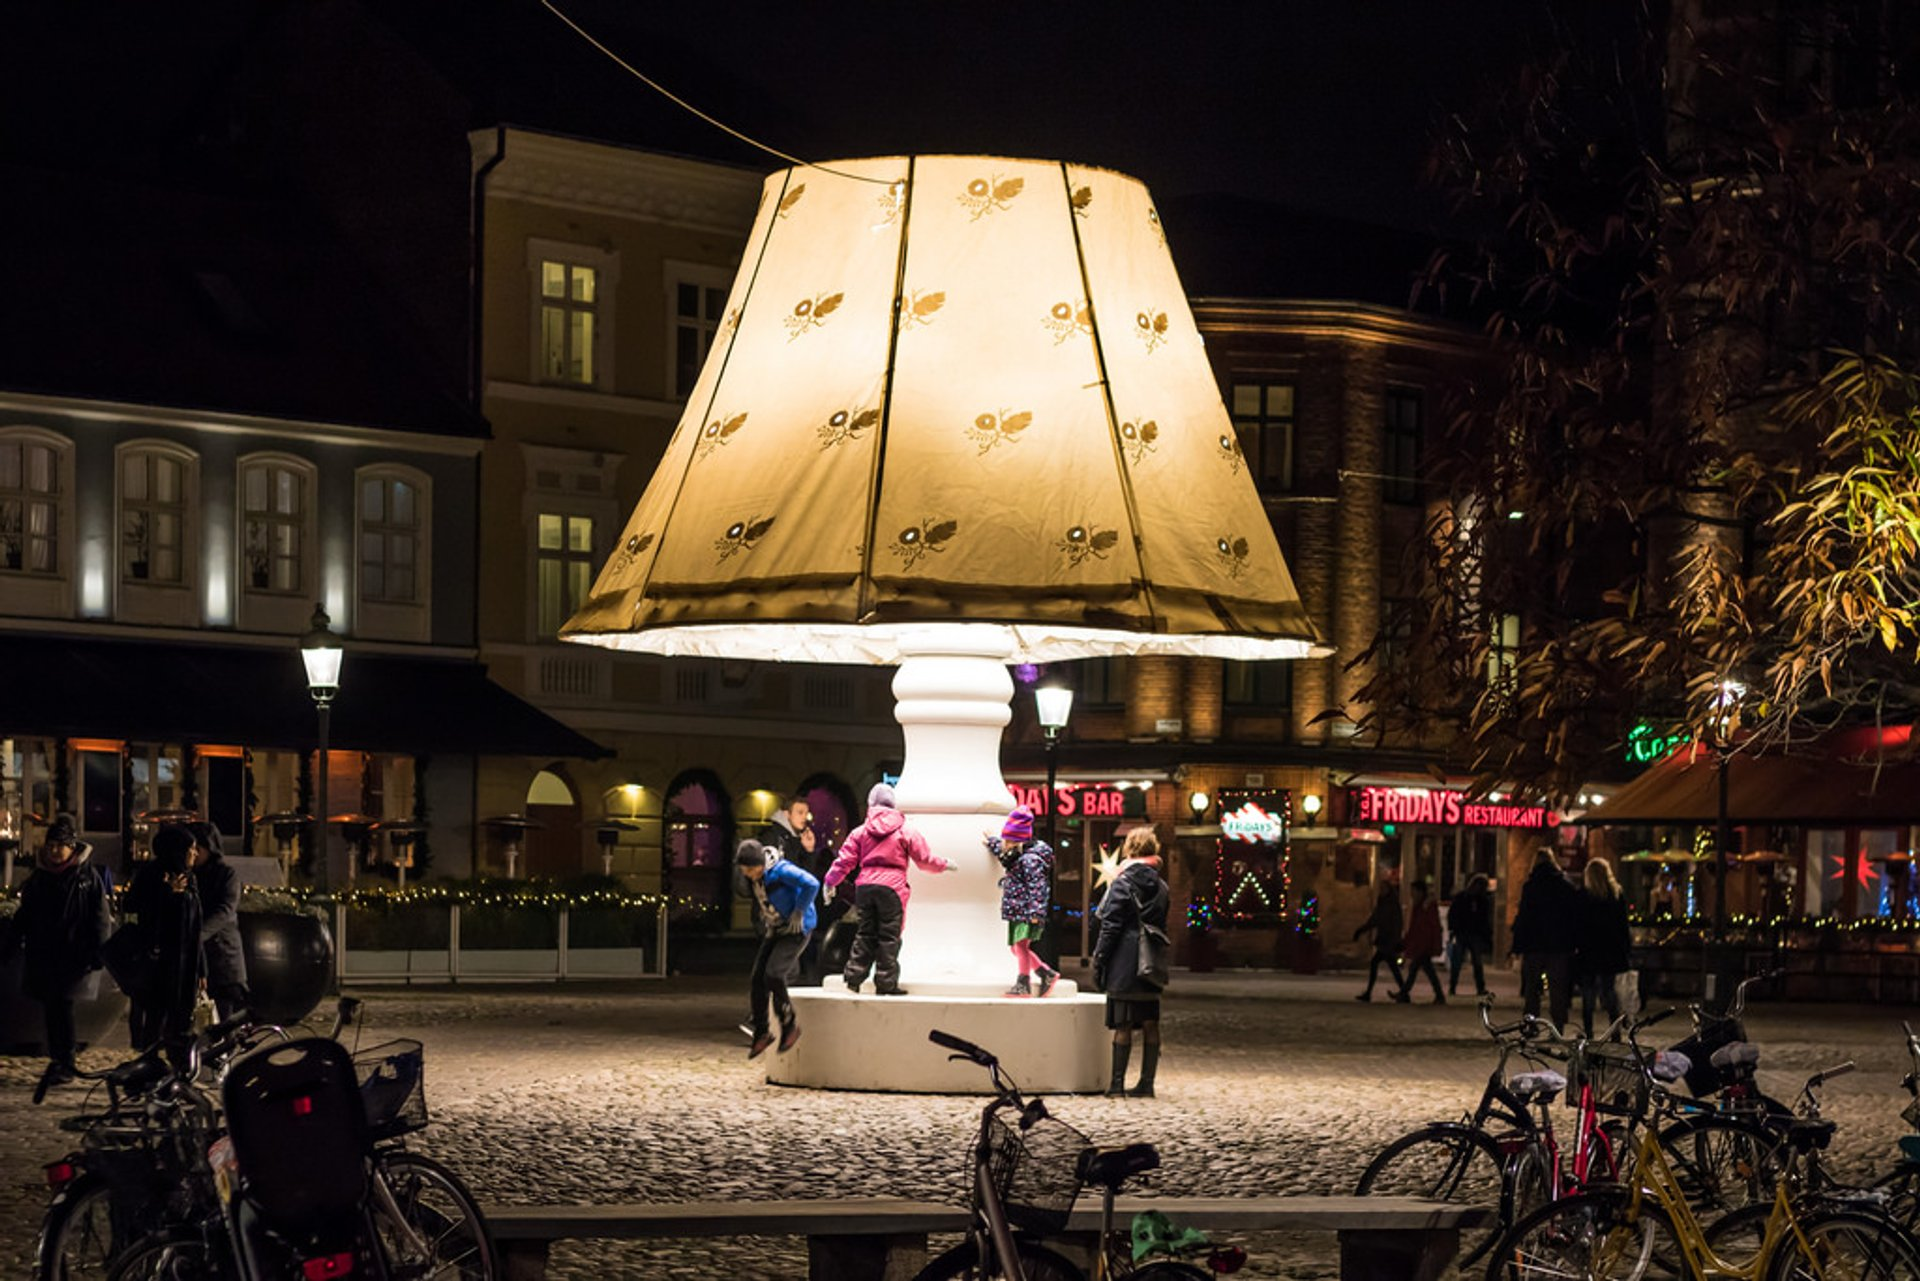 The Talking Christmas Lamp in Sweden 2019 - Best Time